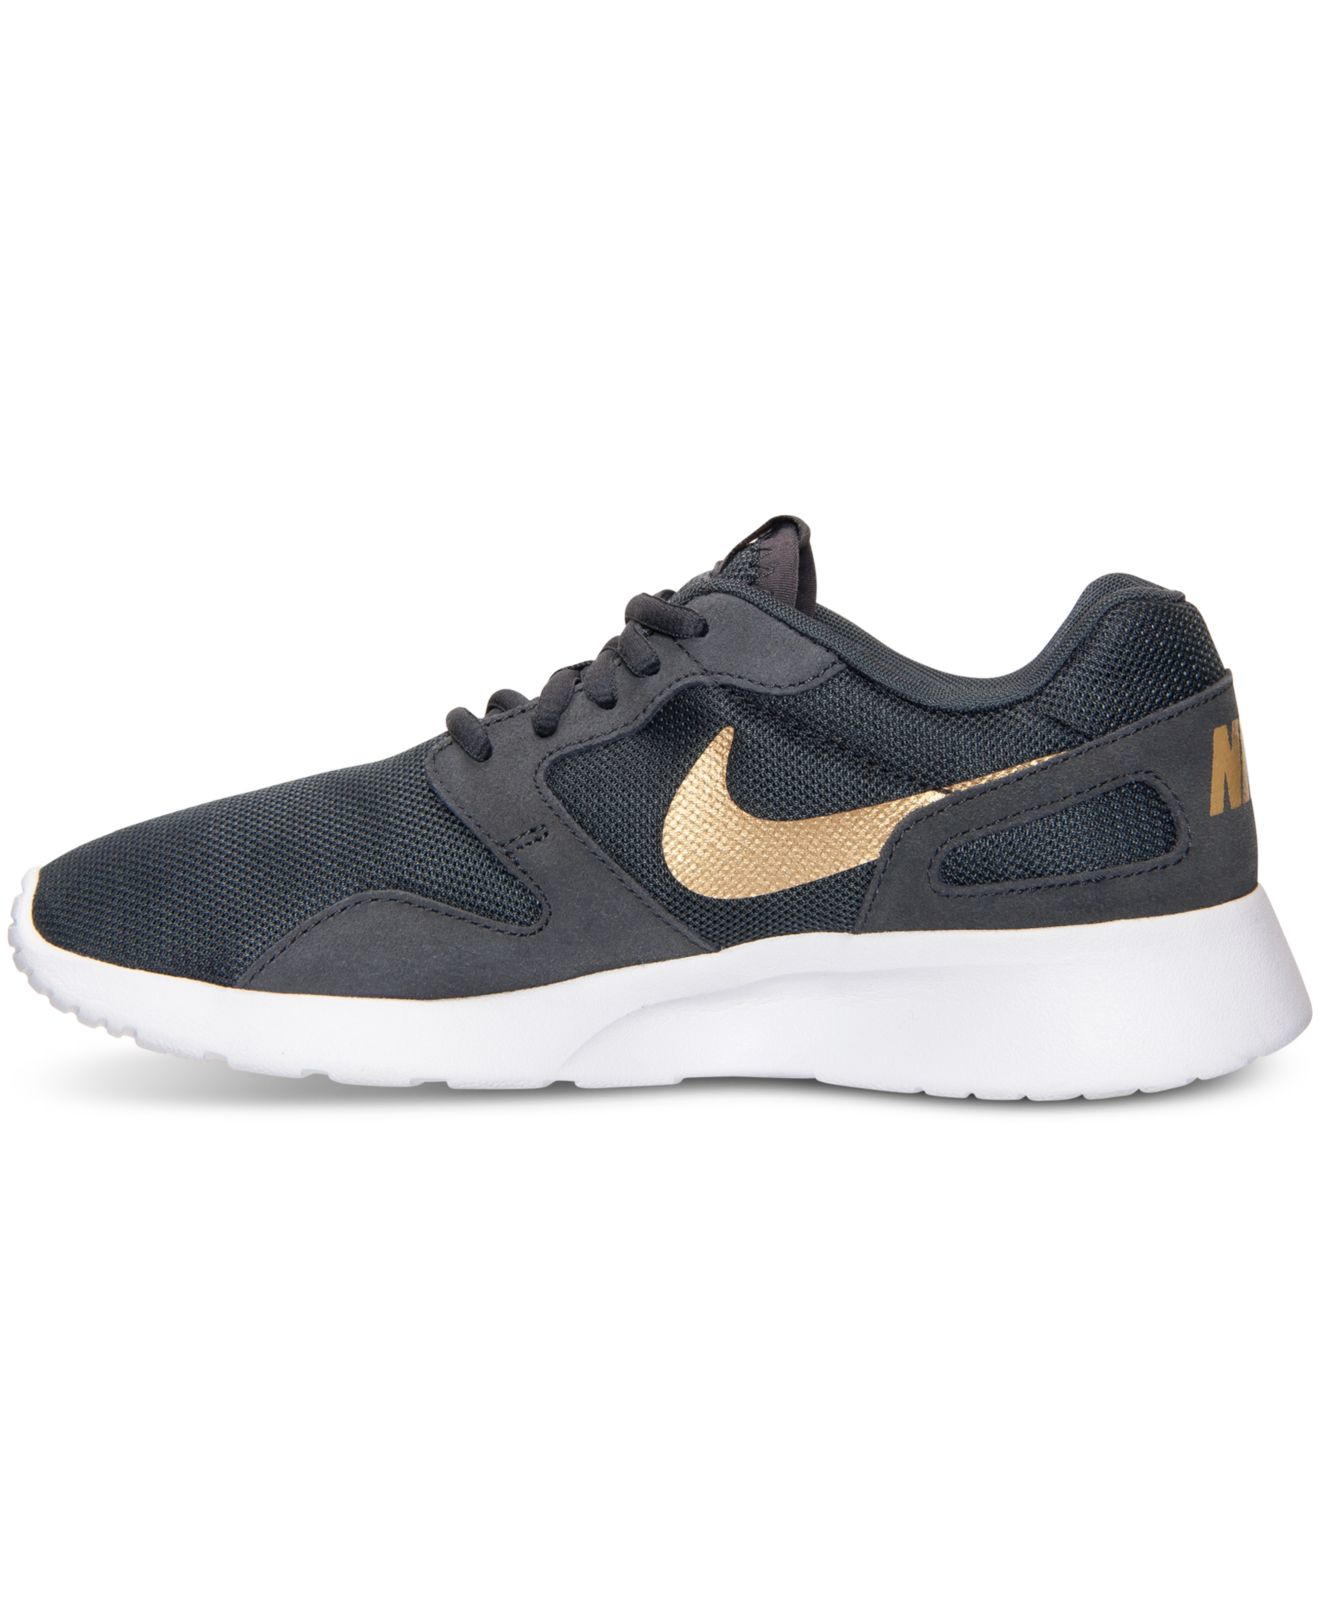 free shipping e7427 89844 Nike Women s Kaishi Casual Sneakers From Finish Line in Gray - Lyst